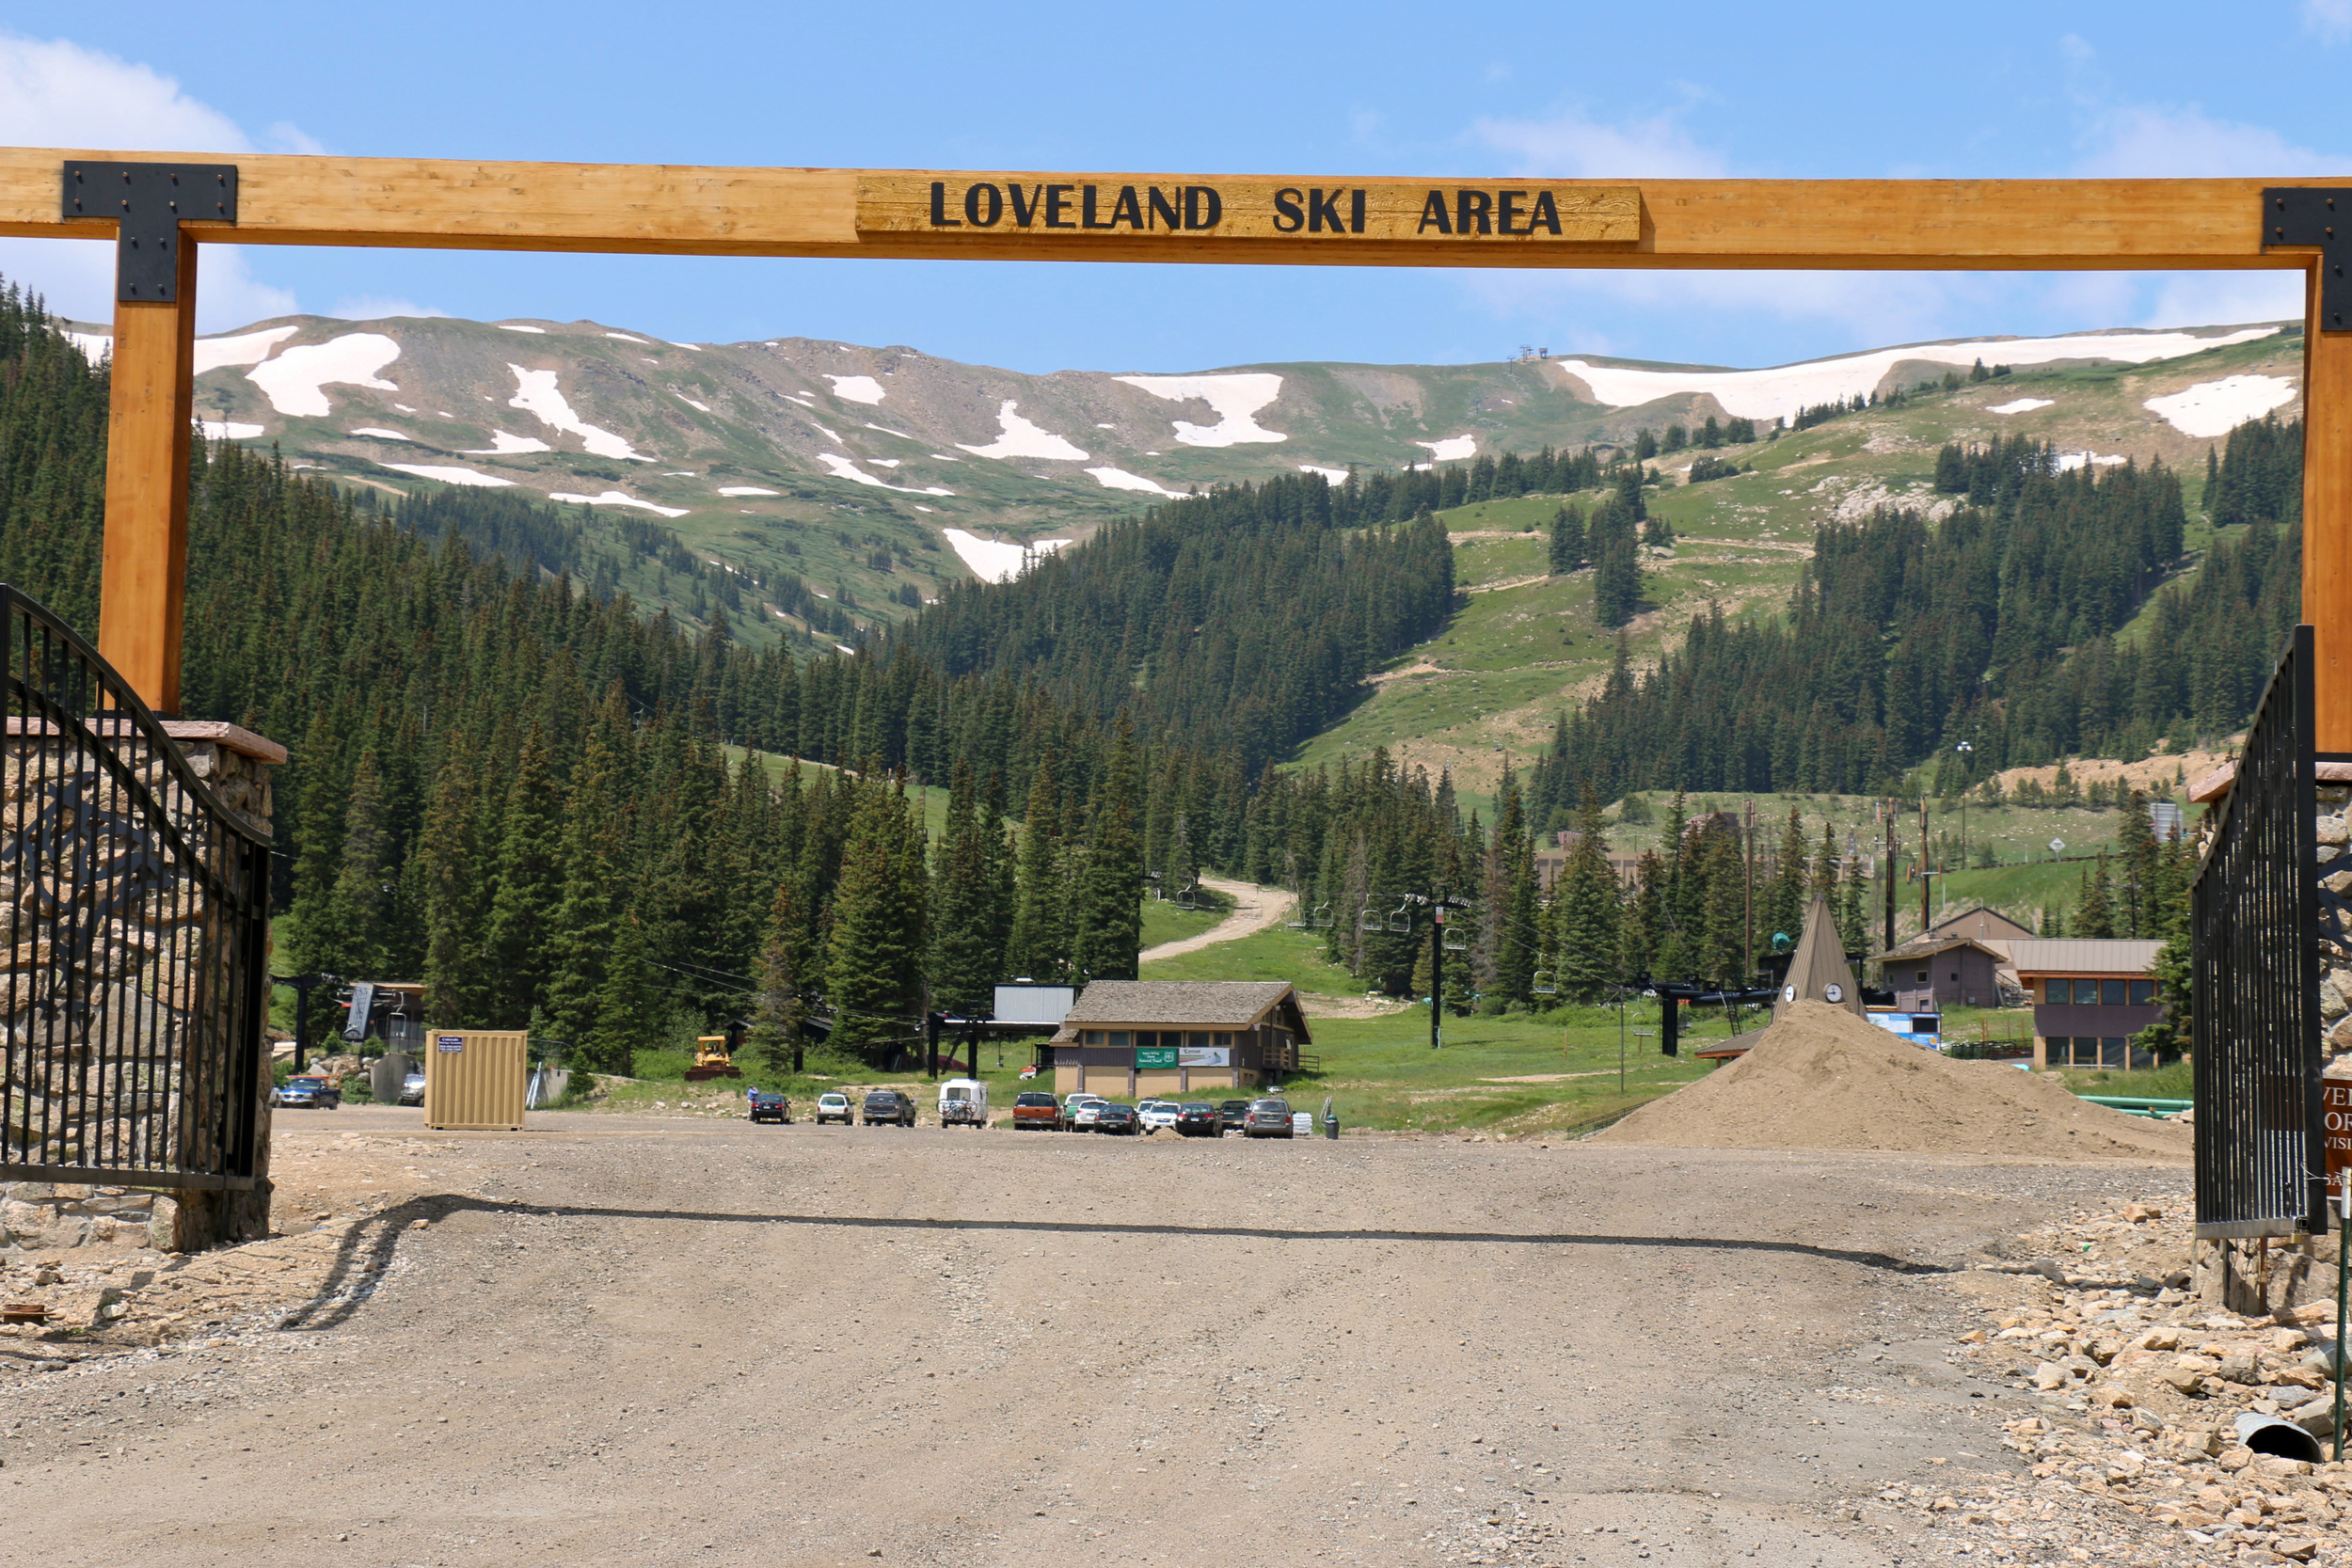 Loveland Ski Area at the bottom of the pass